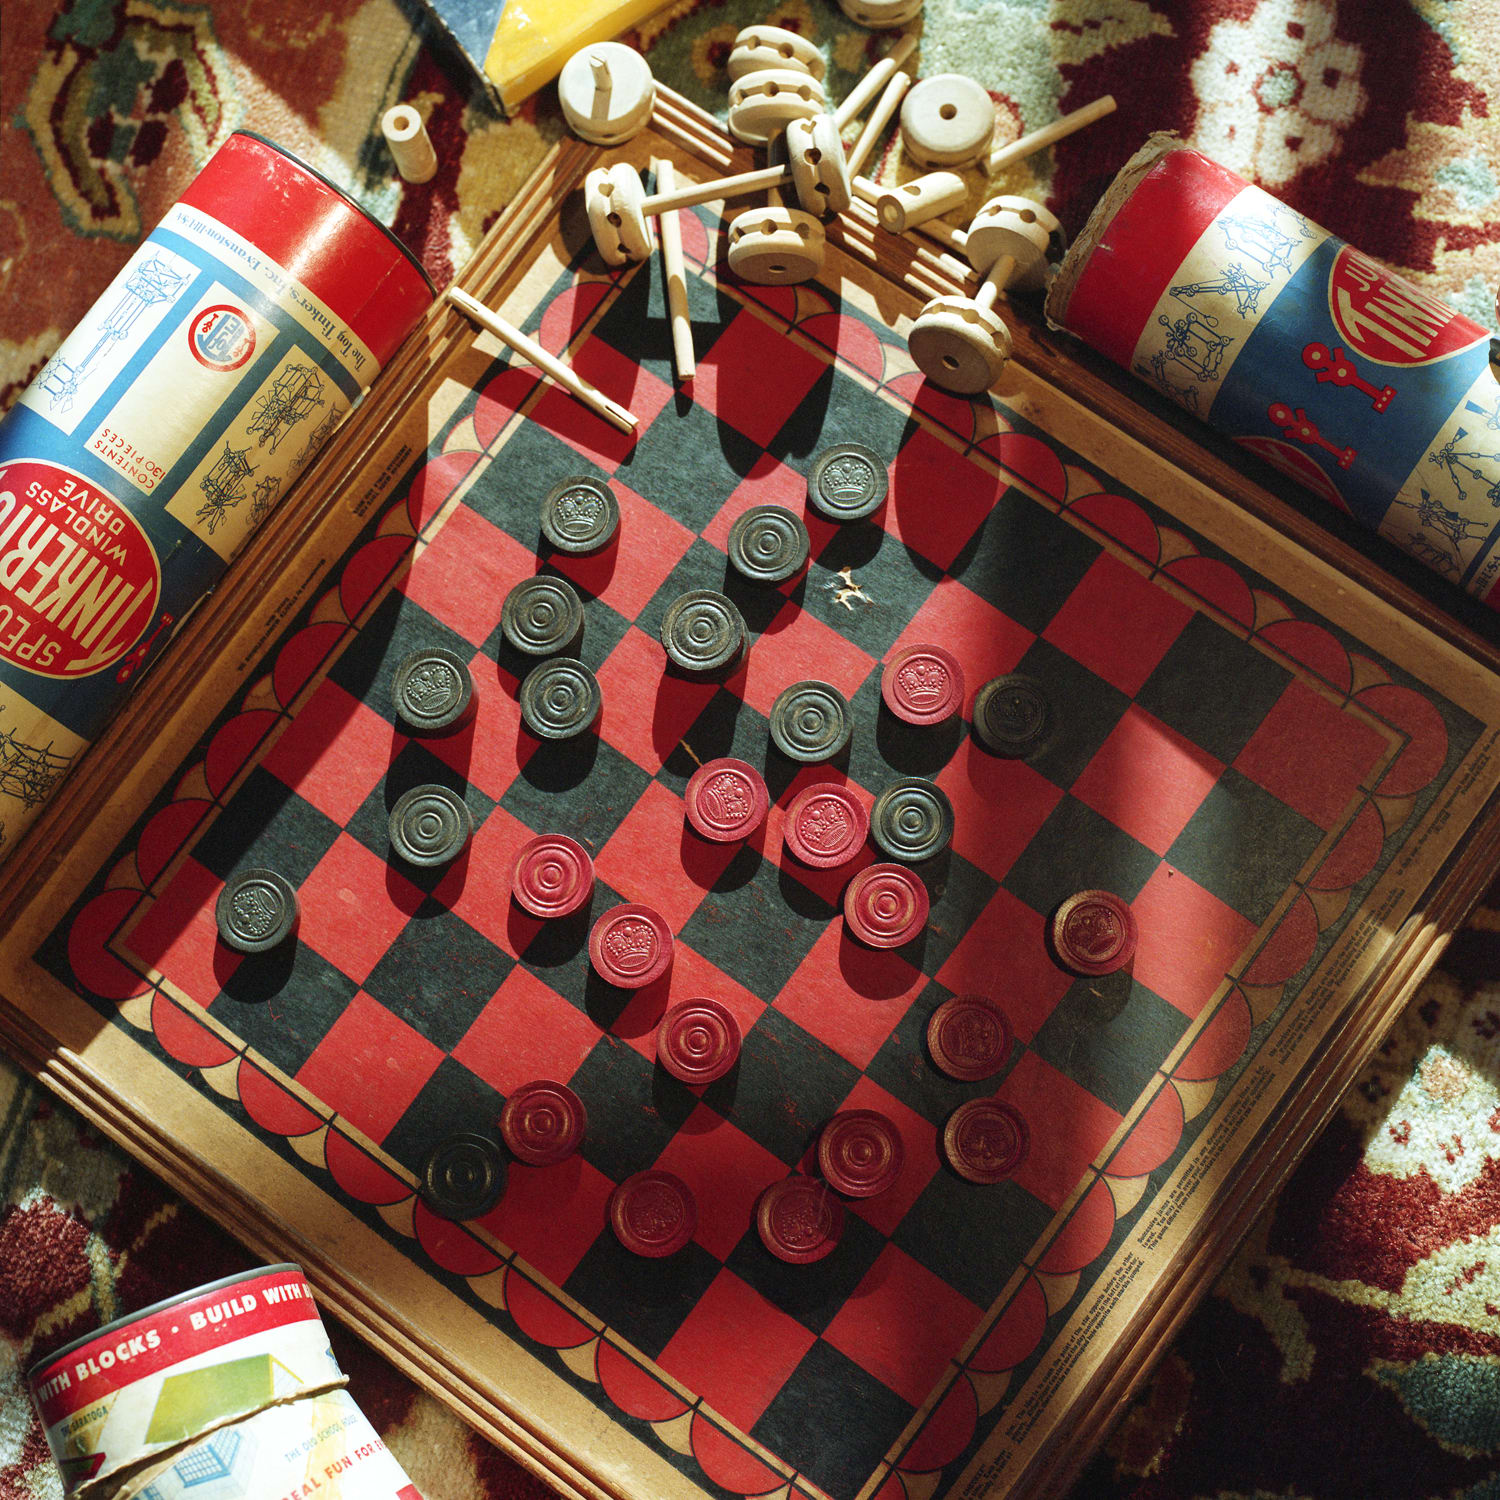 Aline Smithson, Checkers, 2012